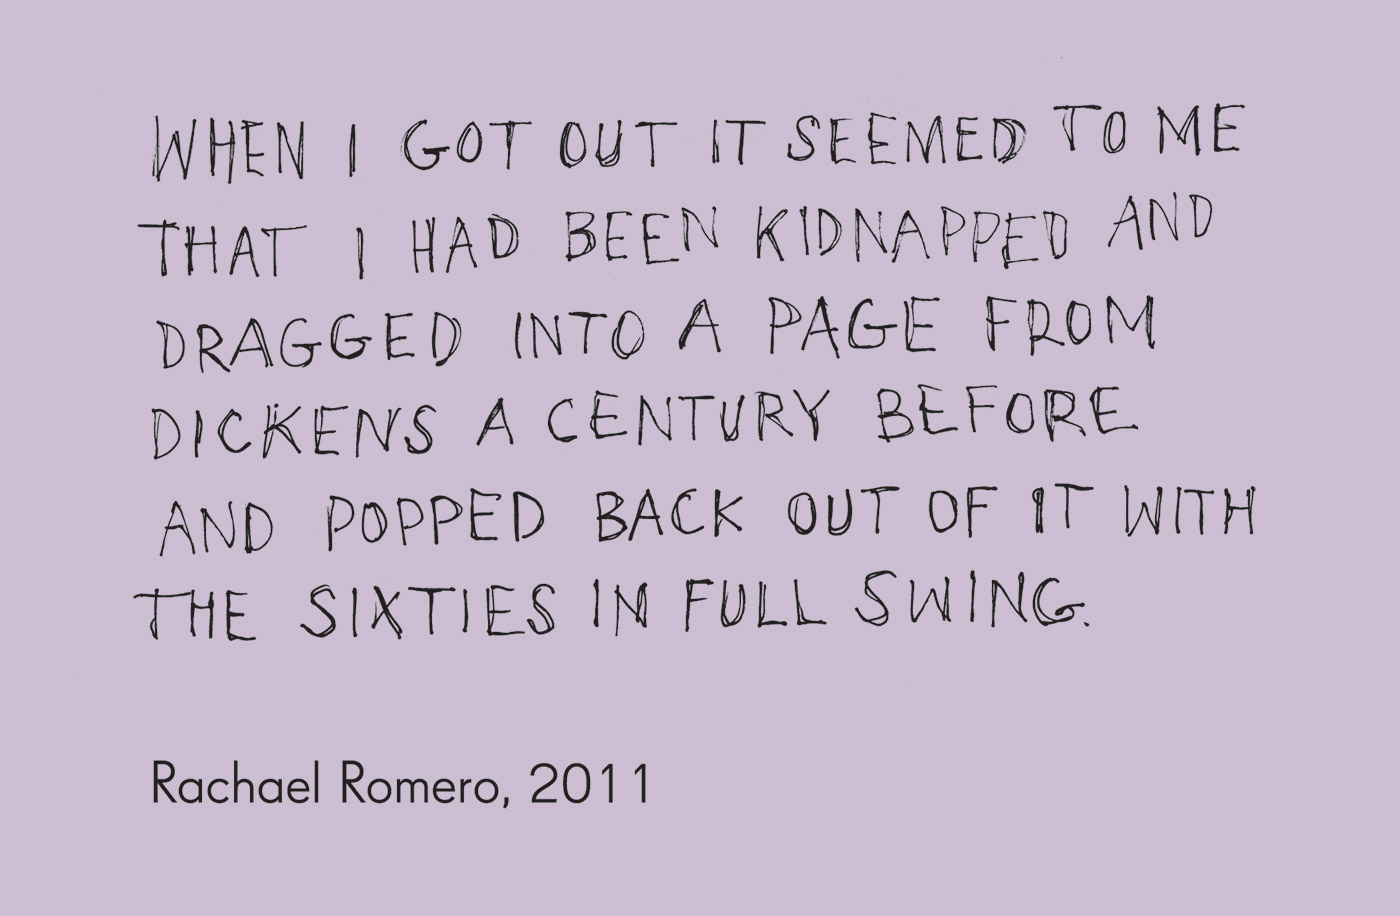 Exhibition graphic panel that reads: 'That I had been kidnapped and dragged into a page from Dickens a century before and popped back out of it with the sixties in full swing', attributed to 'Rachael Romero, 2011'. - click to view larger image